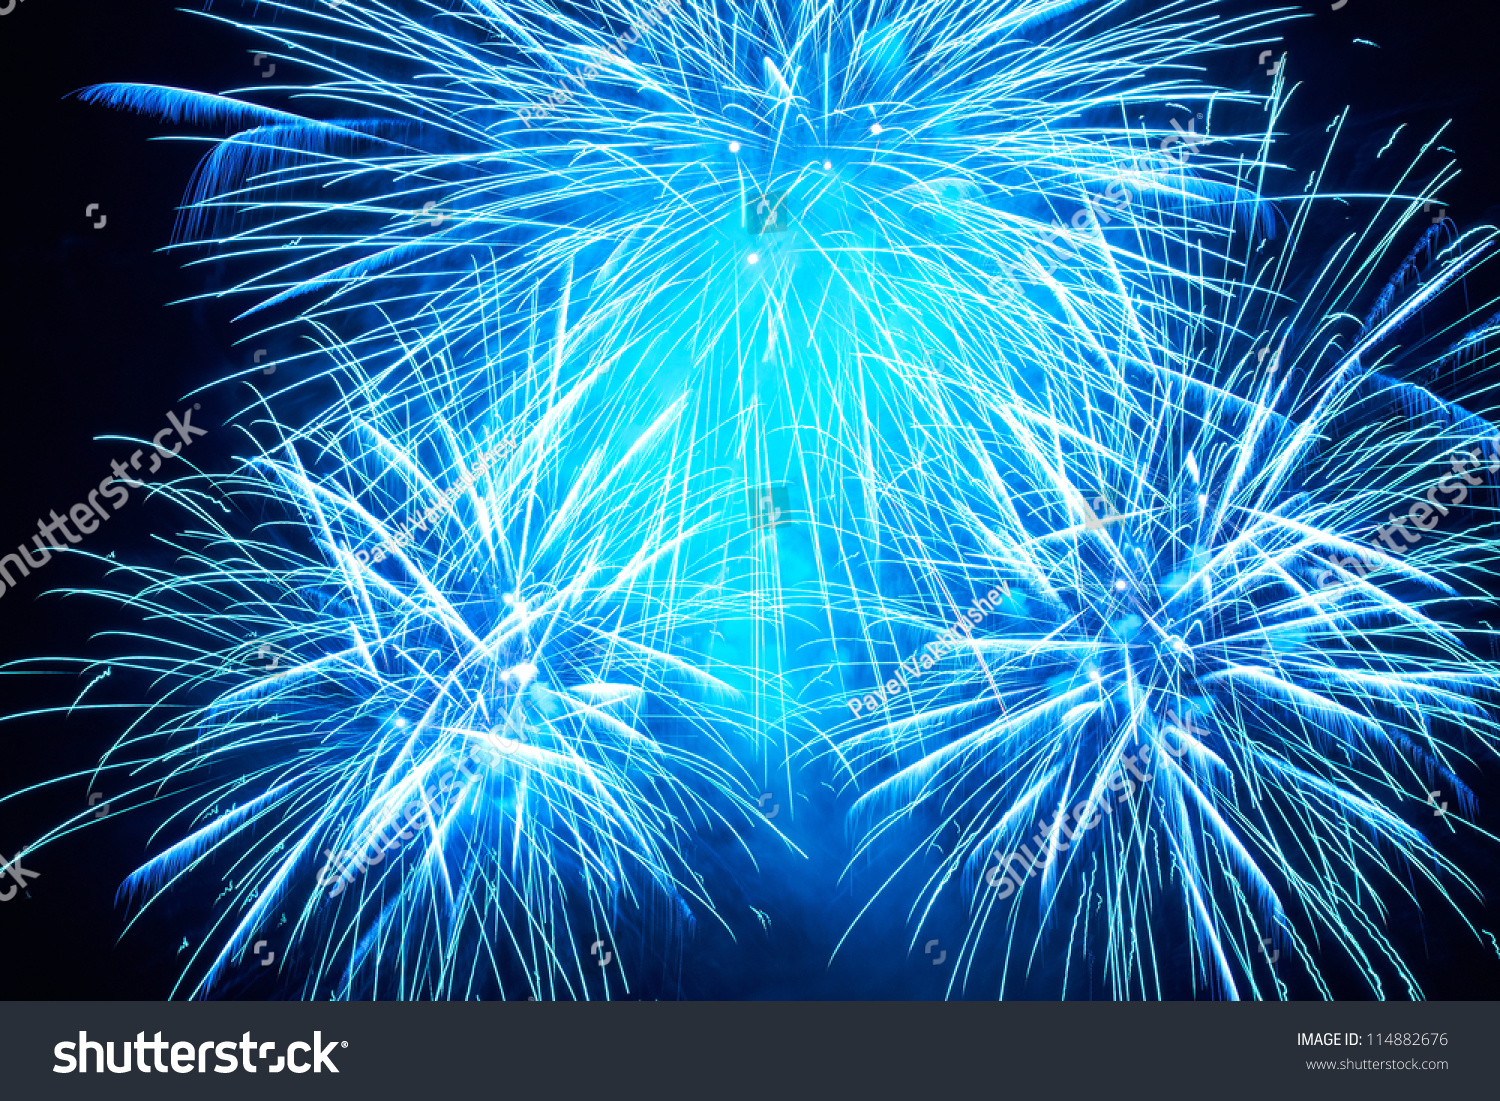 Wallpaper Salute Sky Holiday Colorful 3376x4220: Blue Colorful Fireworks On Black Sky Stock Photo 114882676